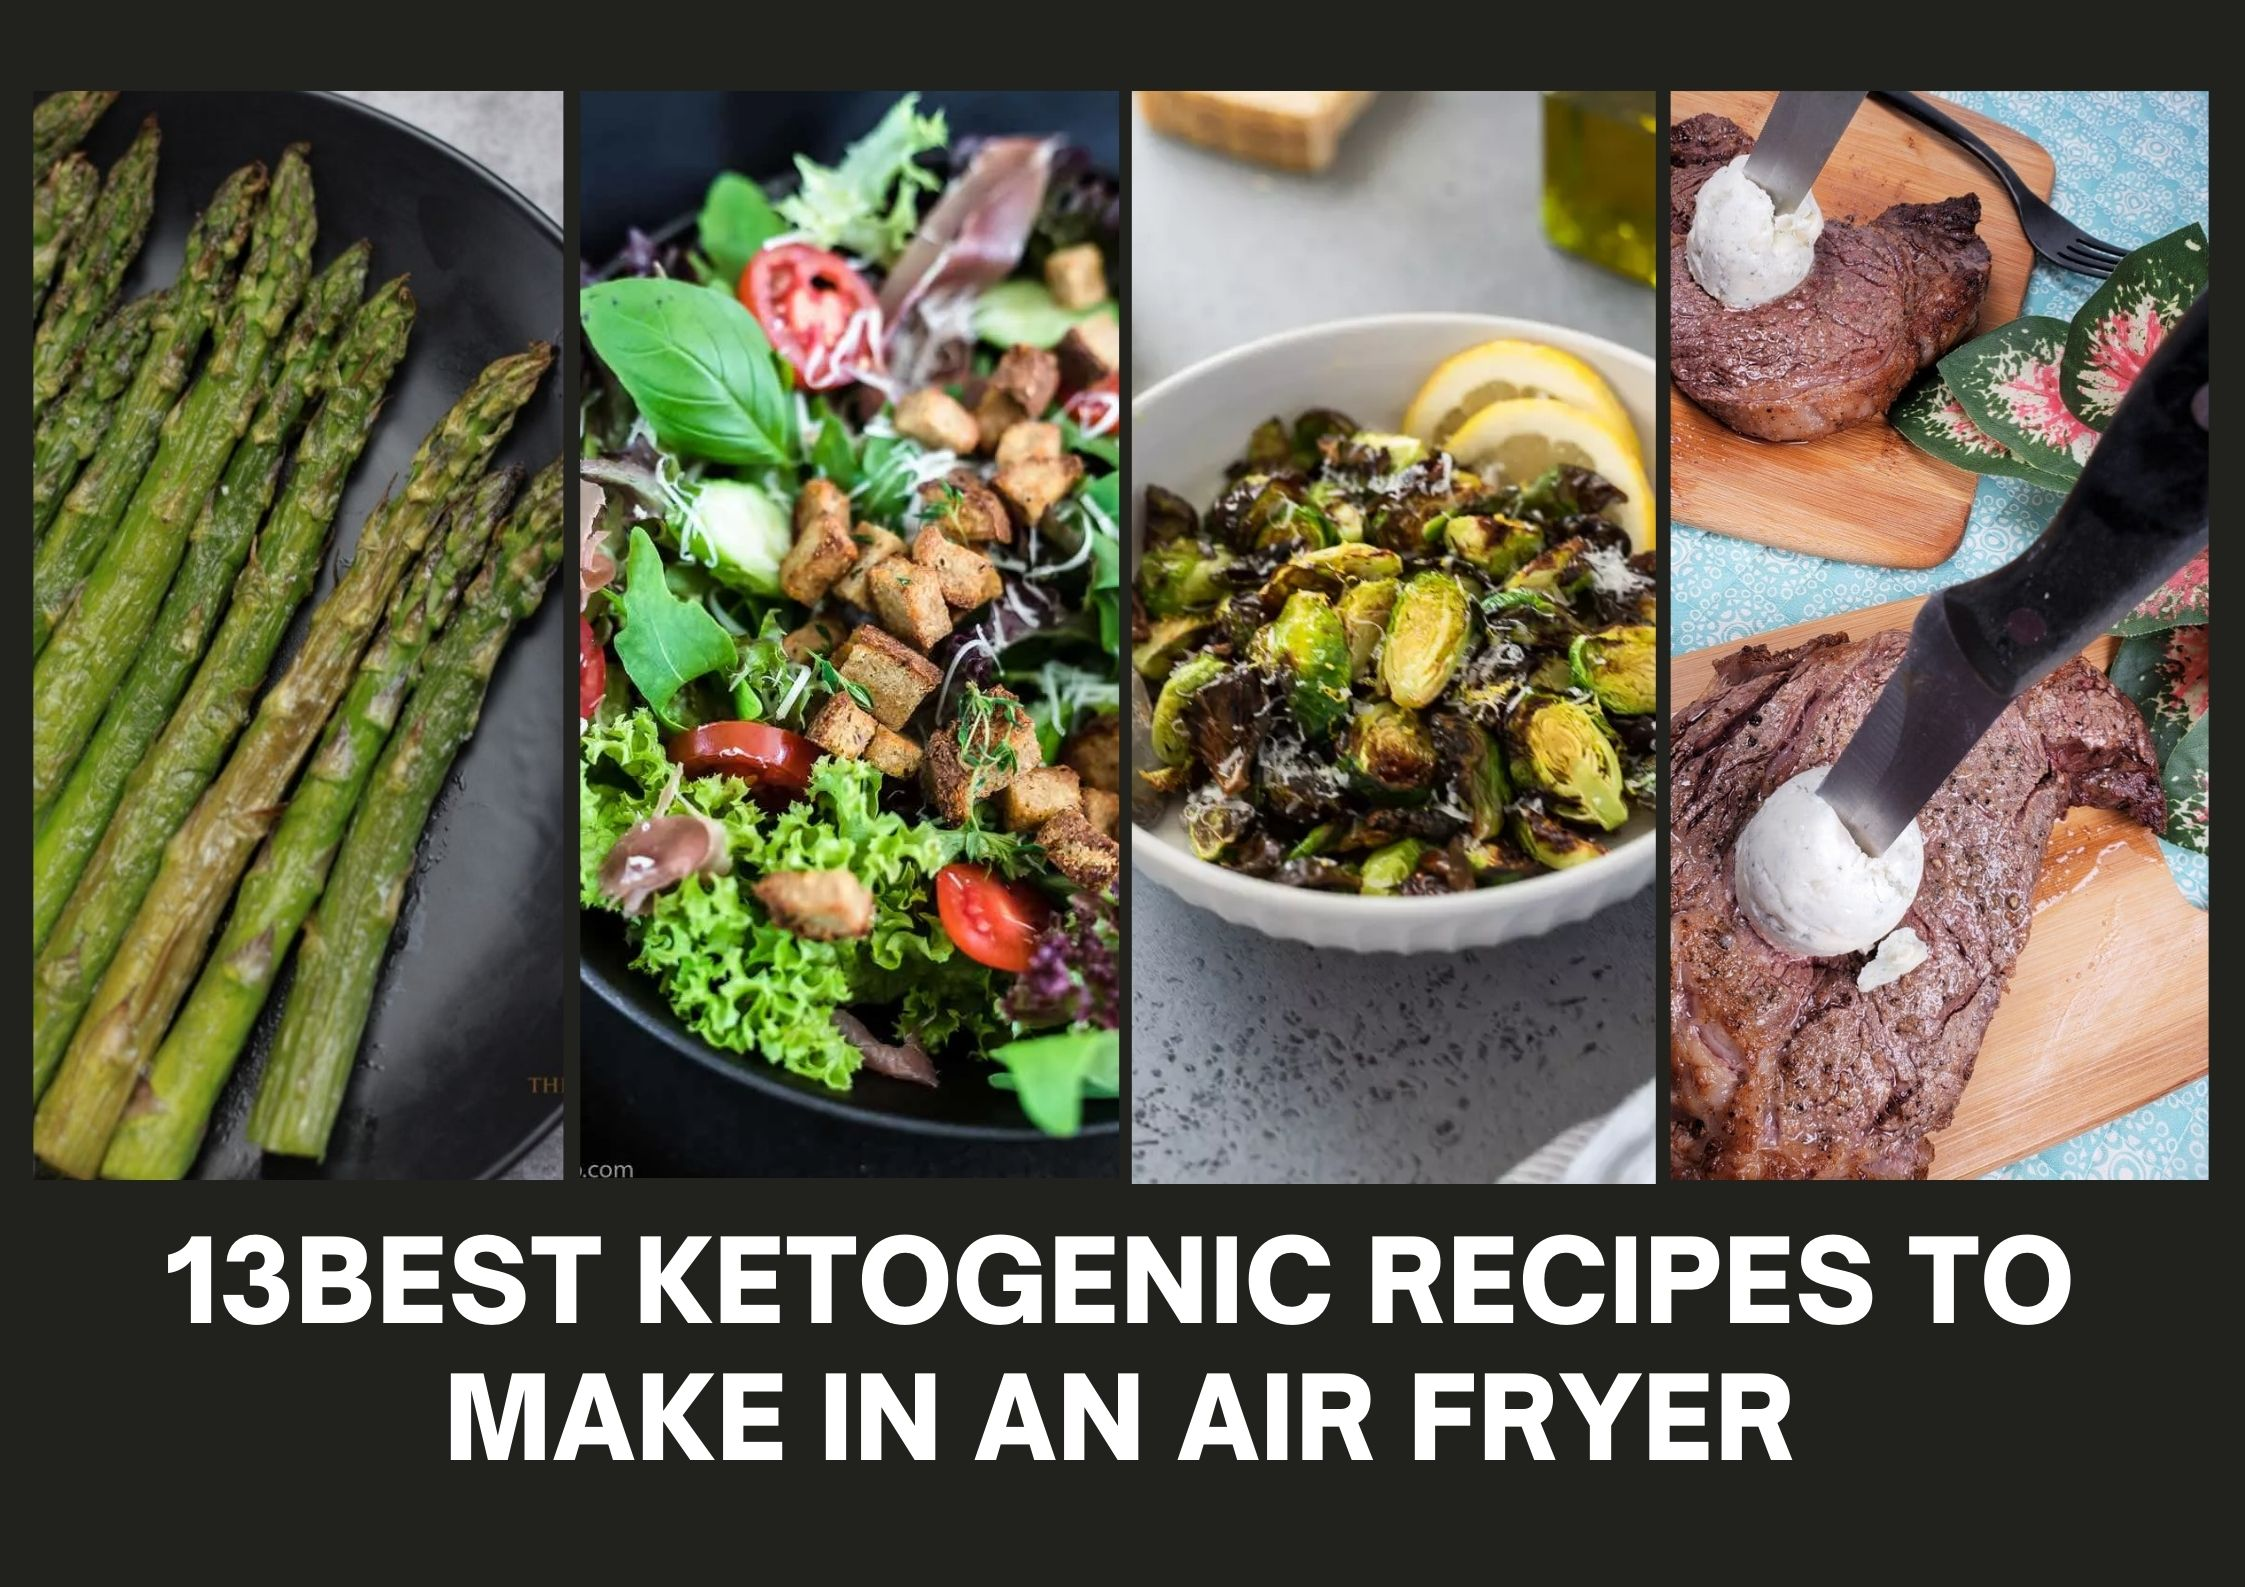 13 Keto Air Fryer Recipes – Best Ketogenic Recipes To Make In An Air Fryer